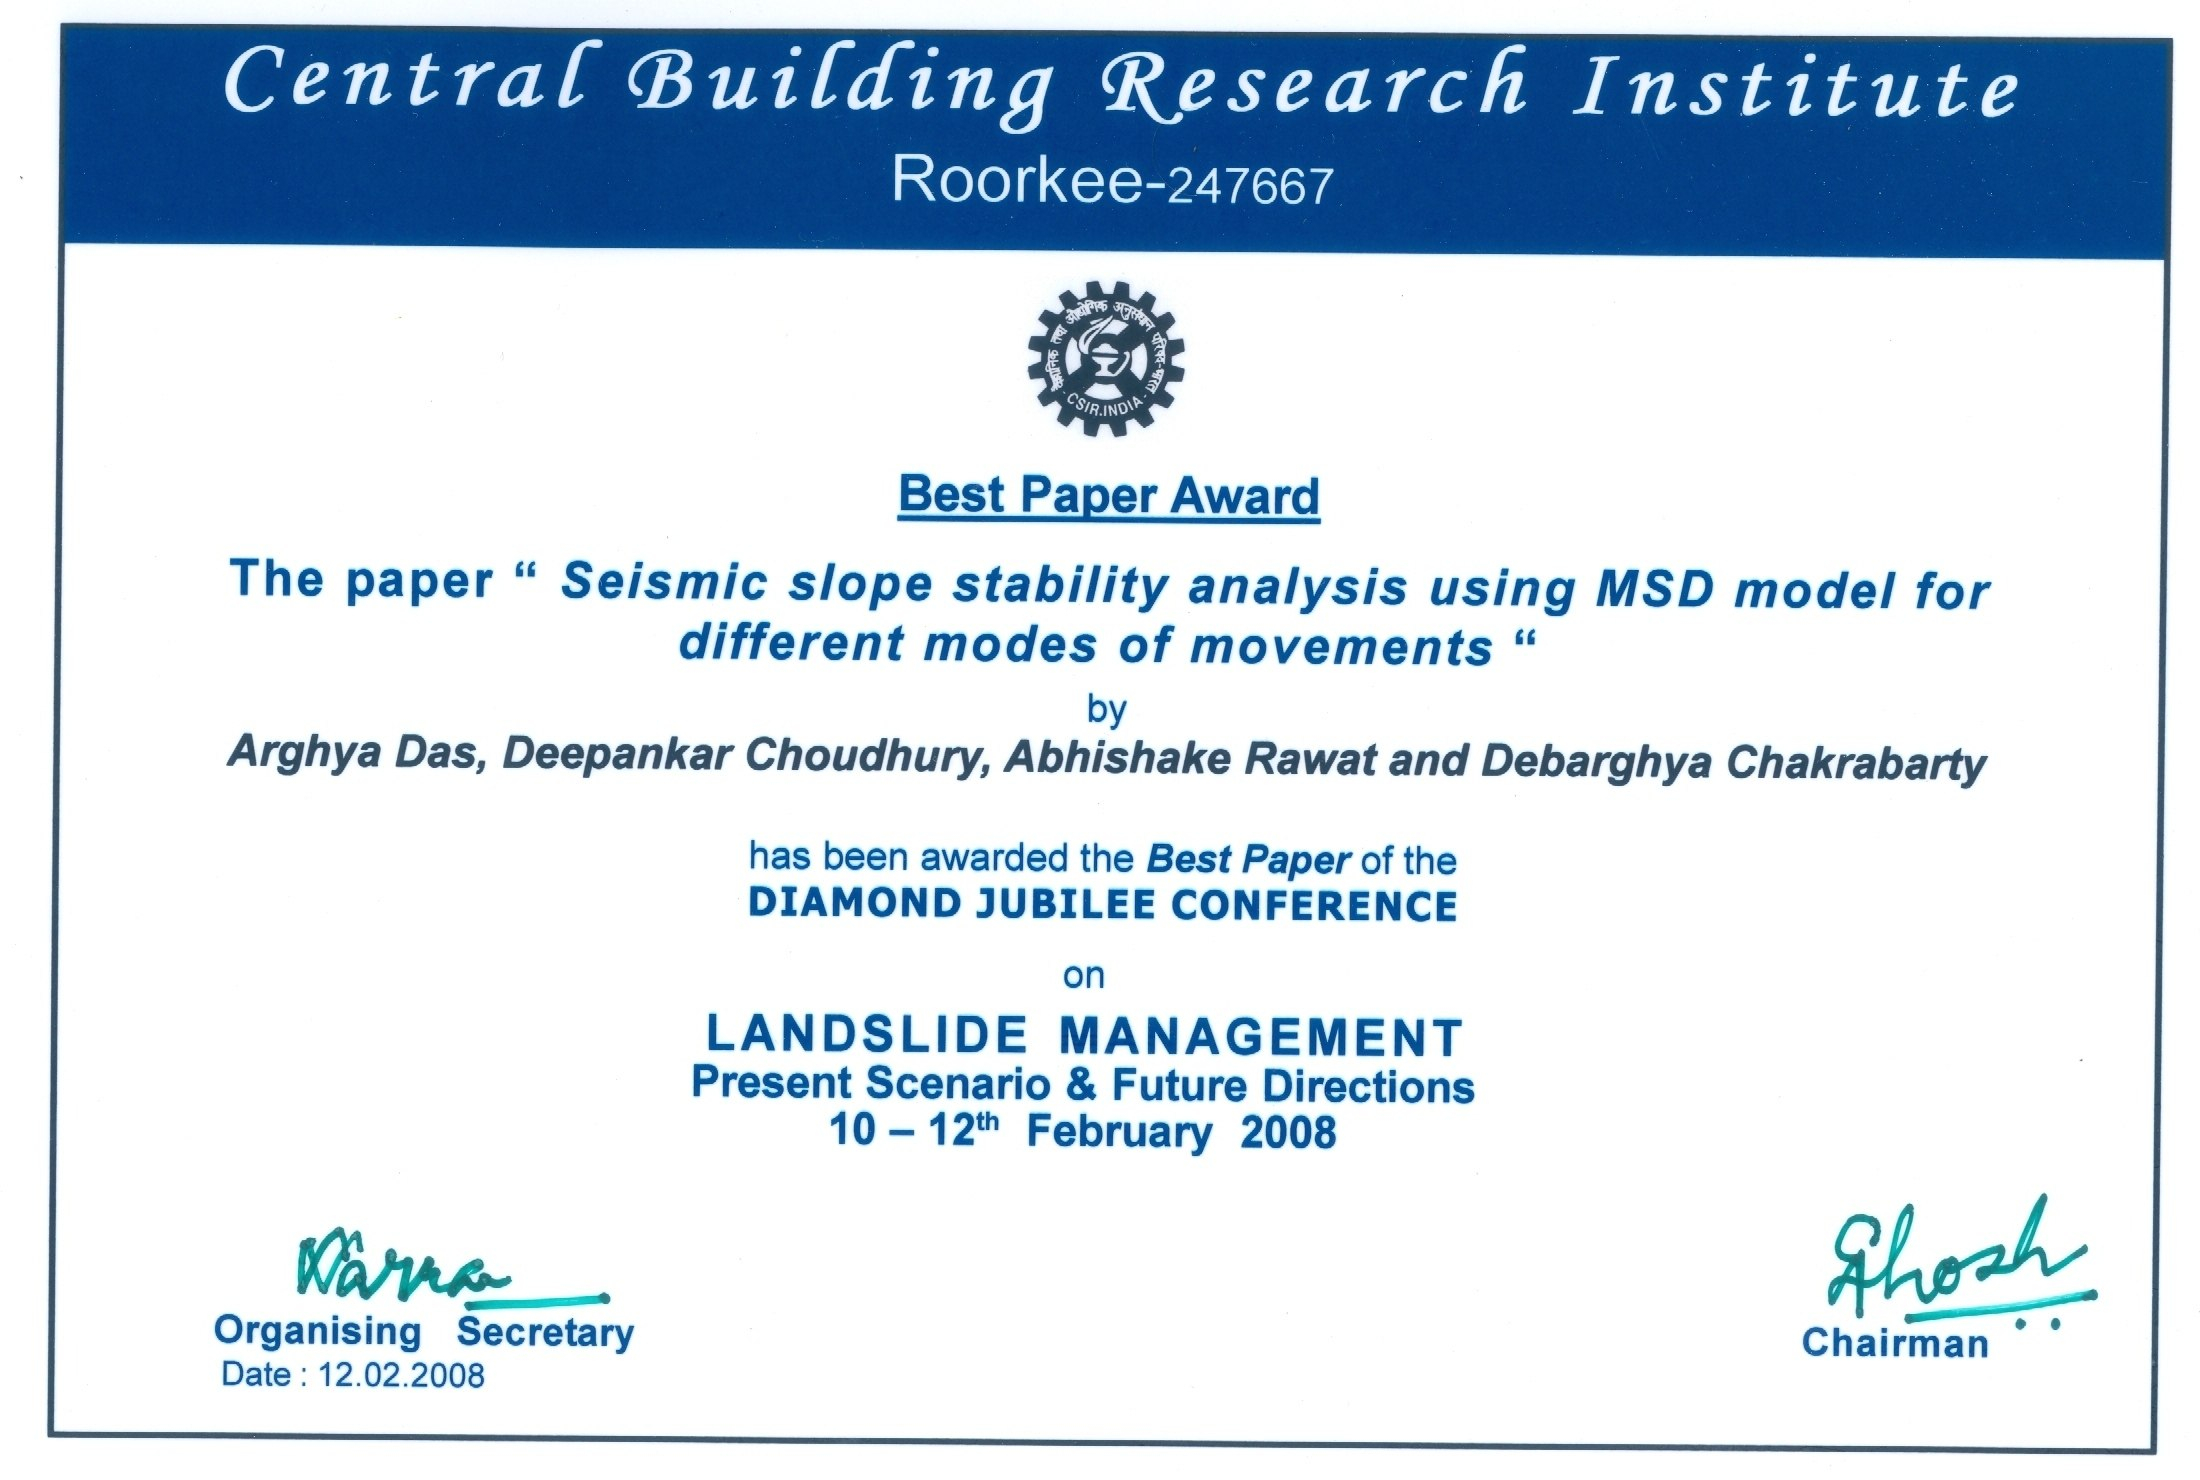 International Conference Certificate Templates  Mandegar For International Conference Certificate Templates